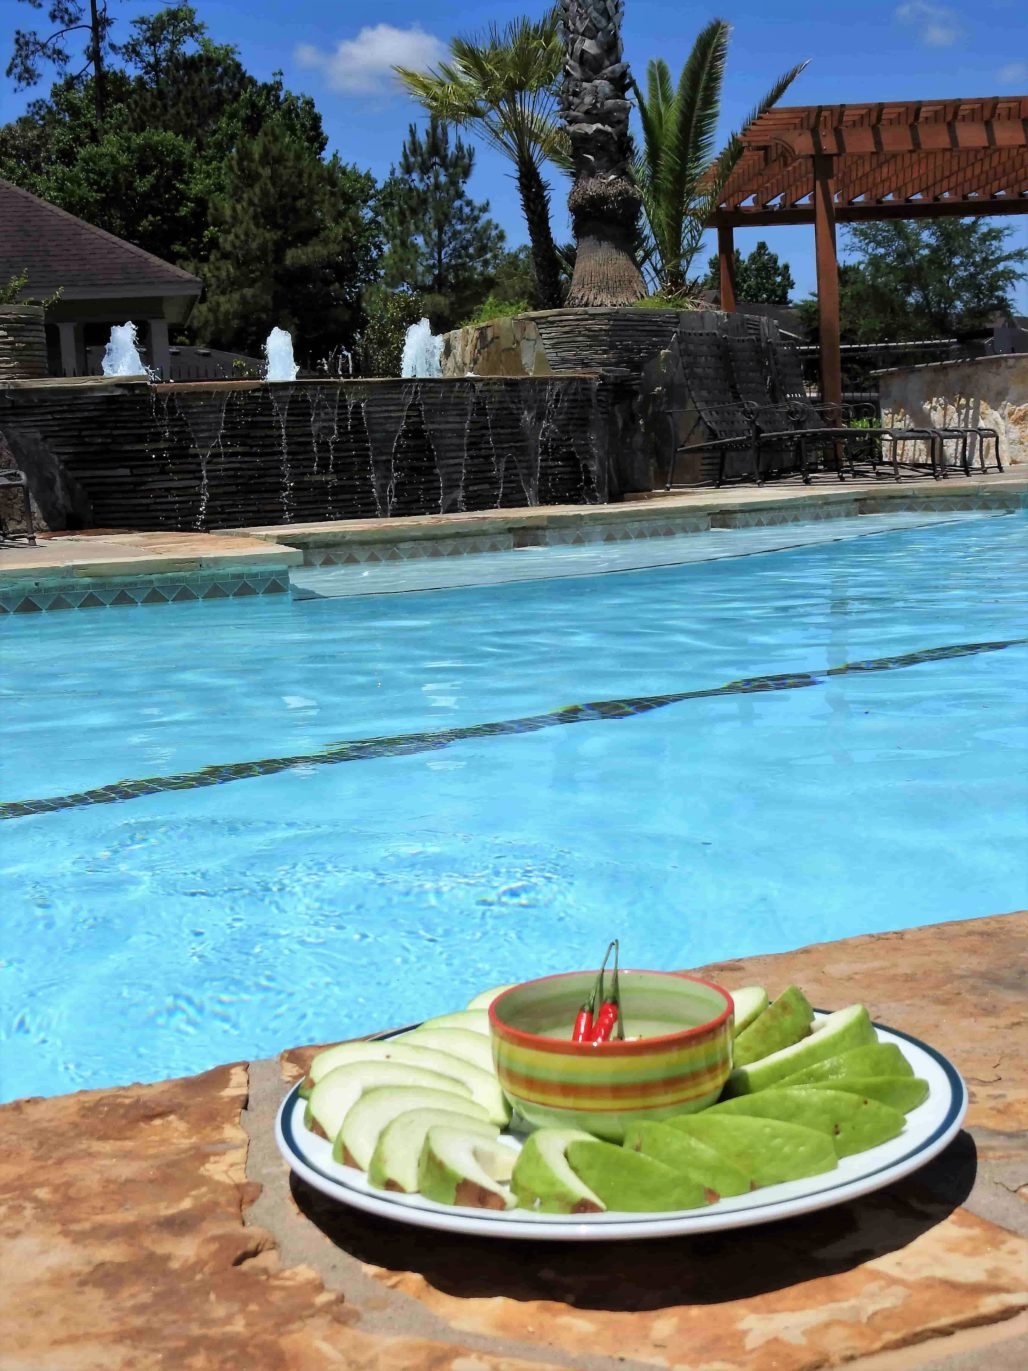 Thai Fruit Dip As a Pool Snack